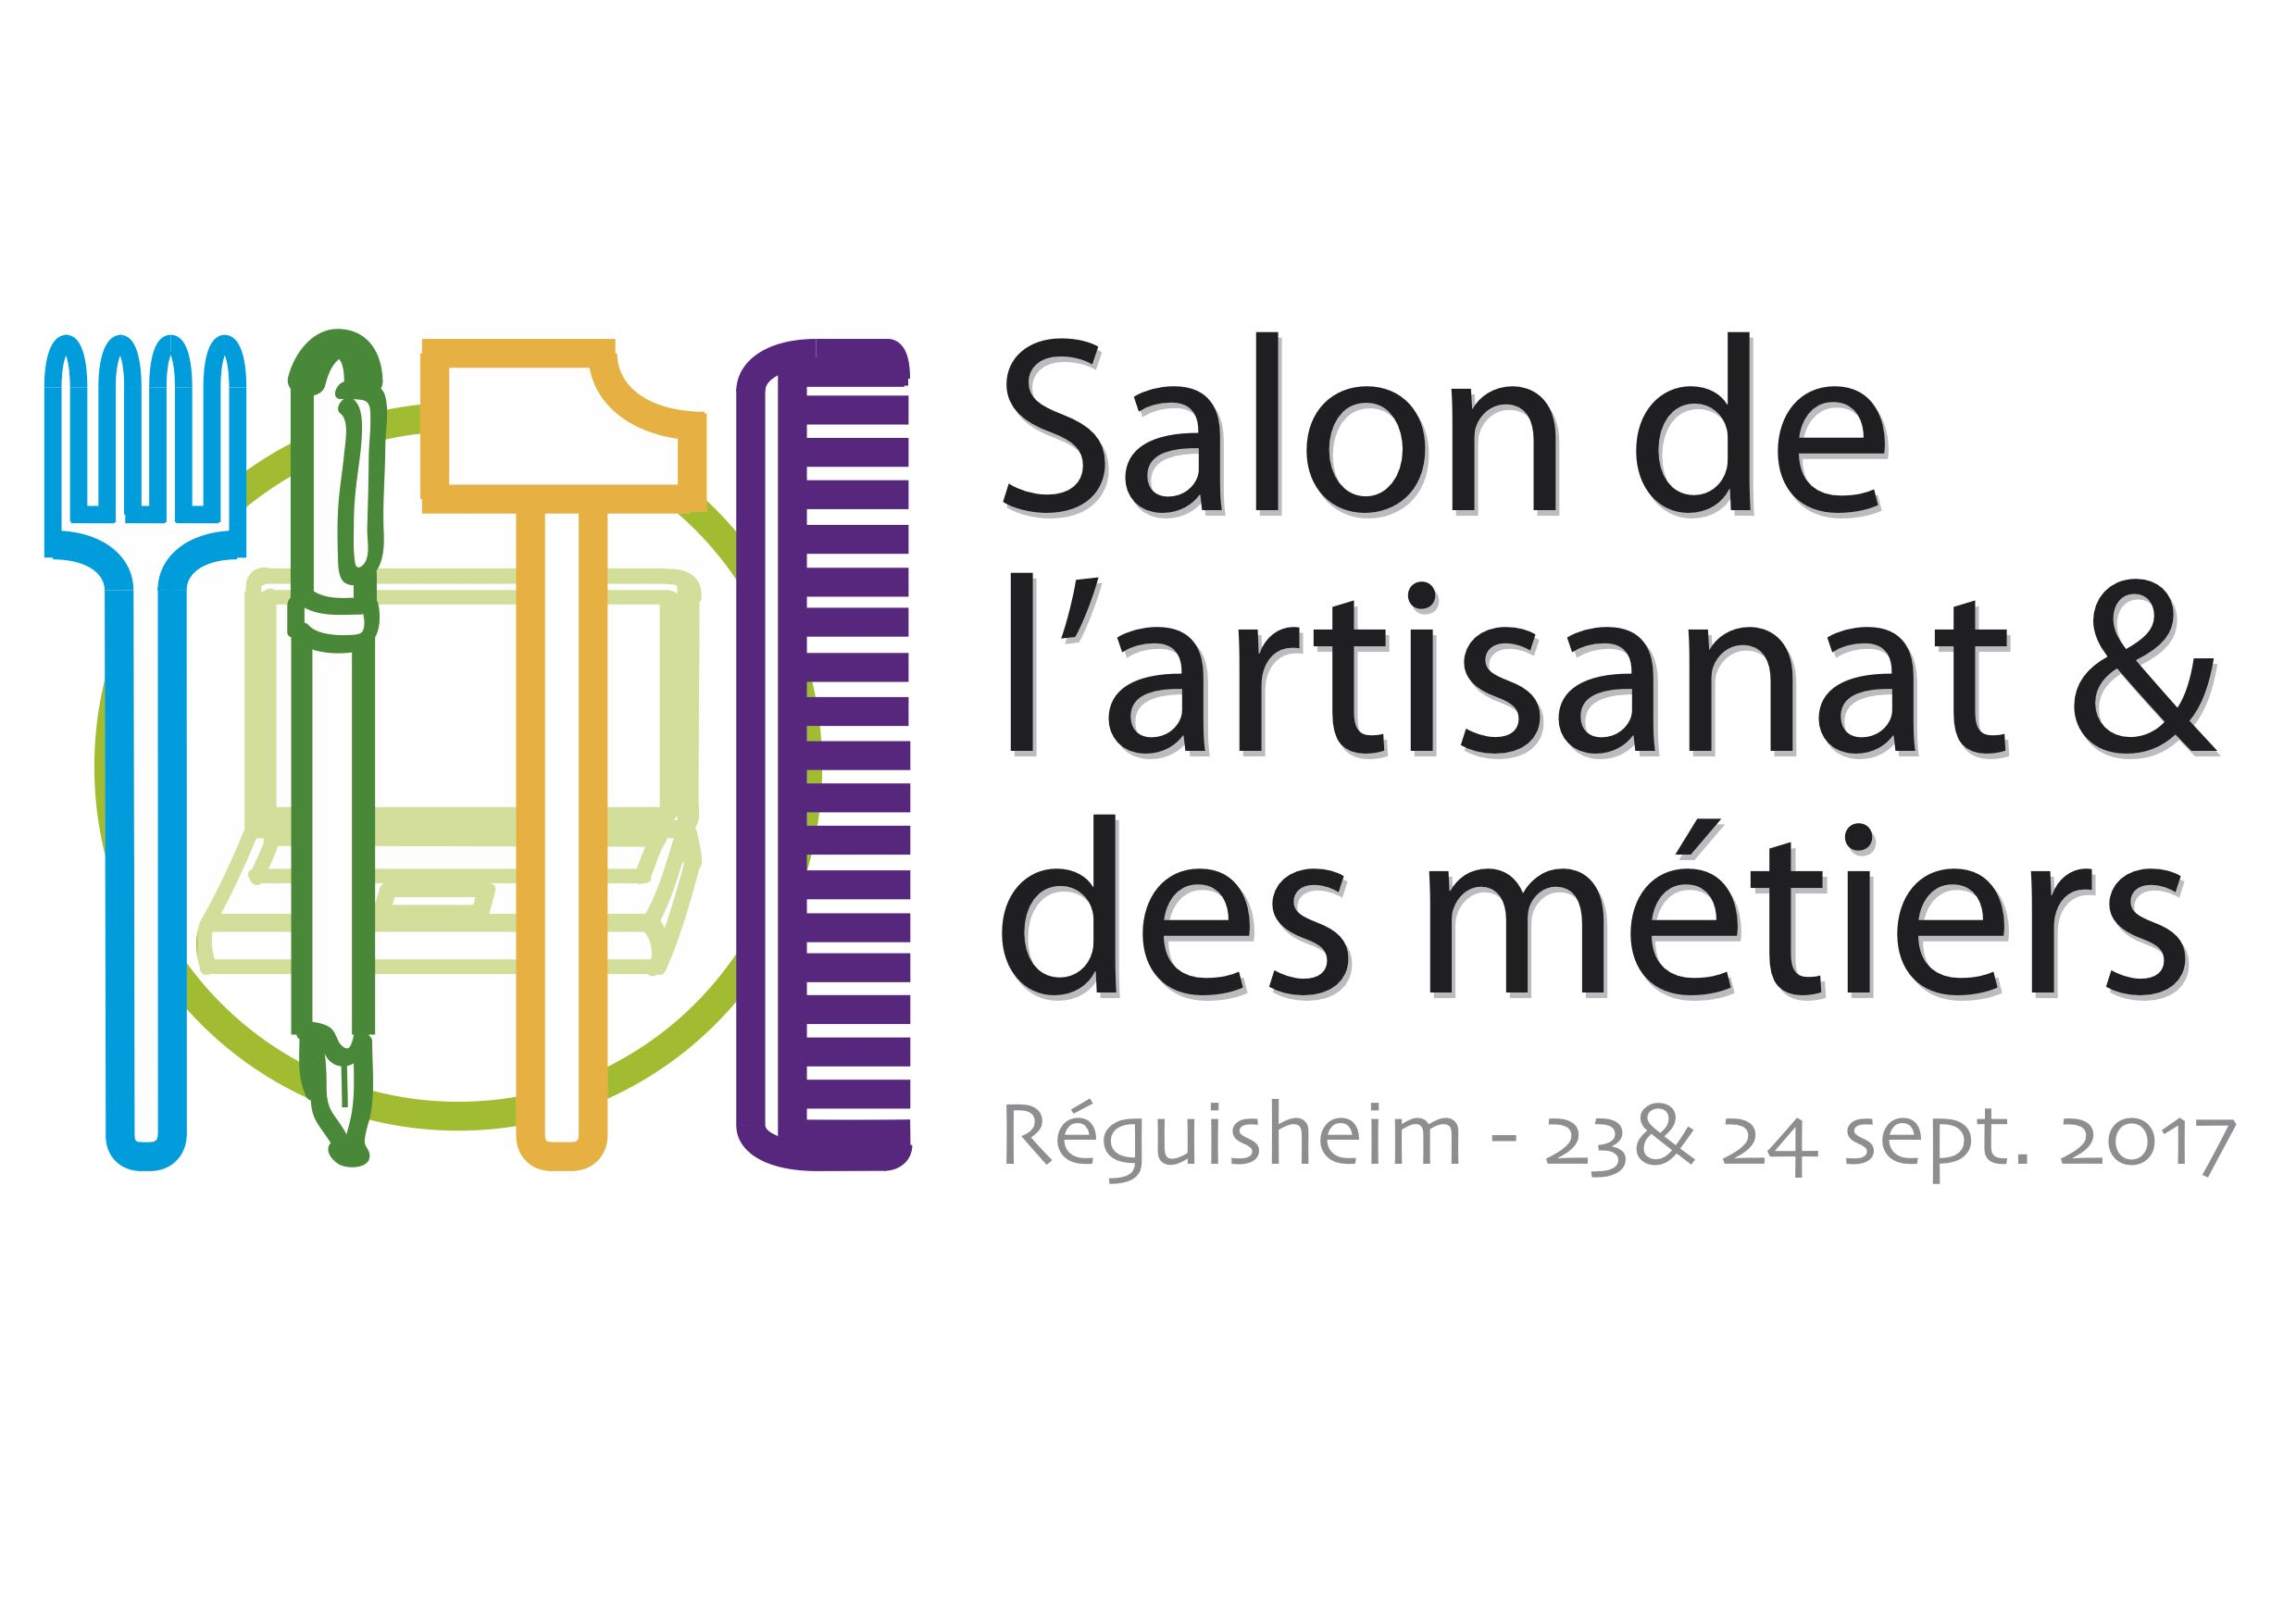 Salon de l artisanat et des m tiers 2017 et si votre for Salon de l industrie 2017